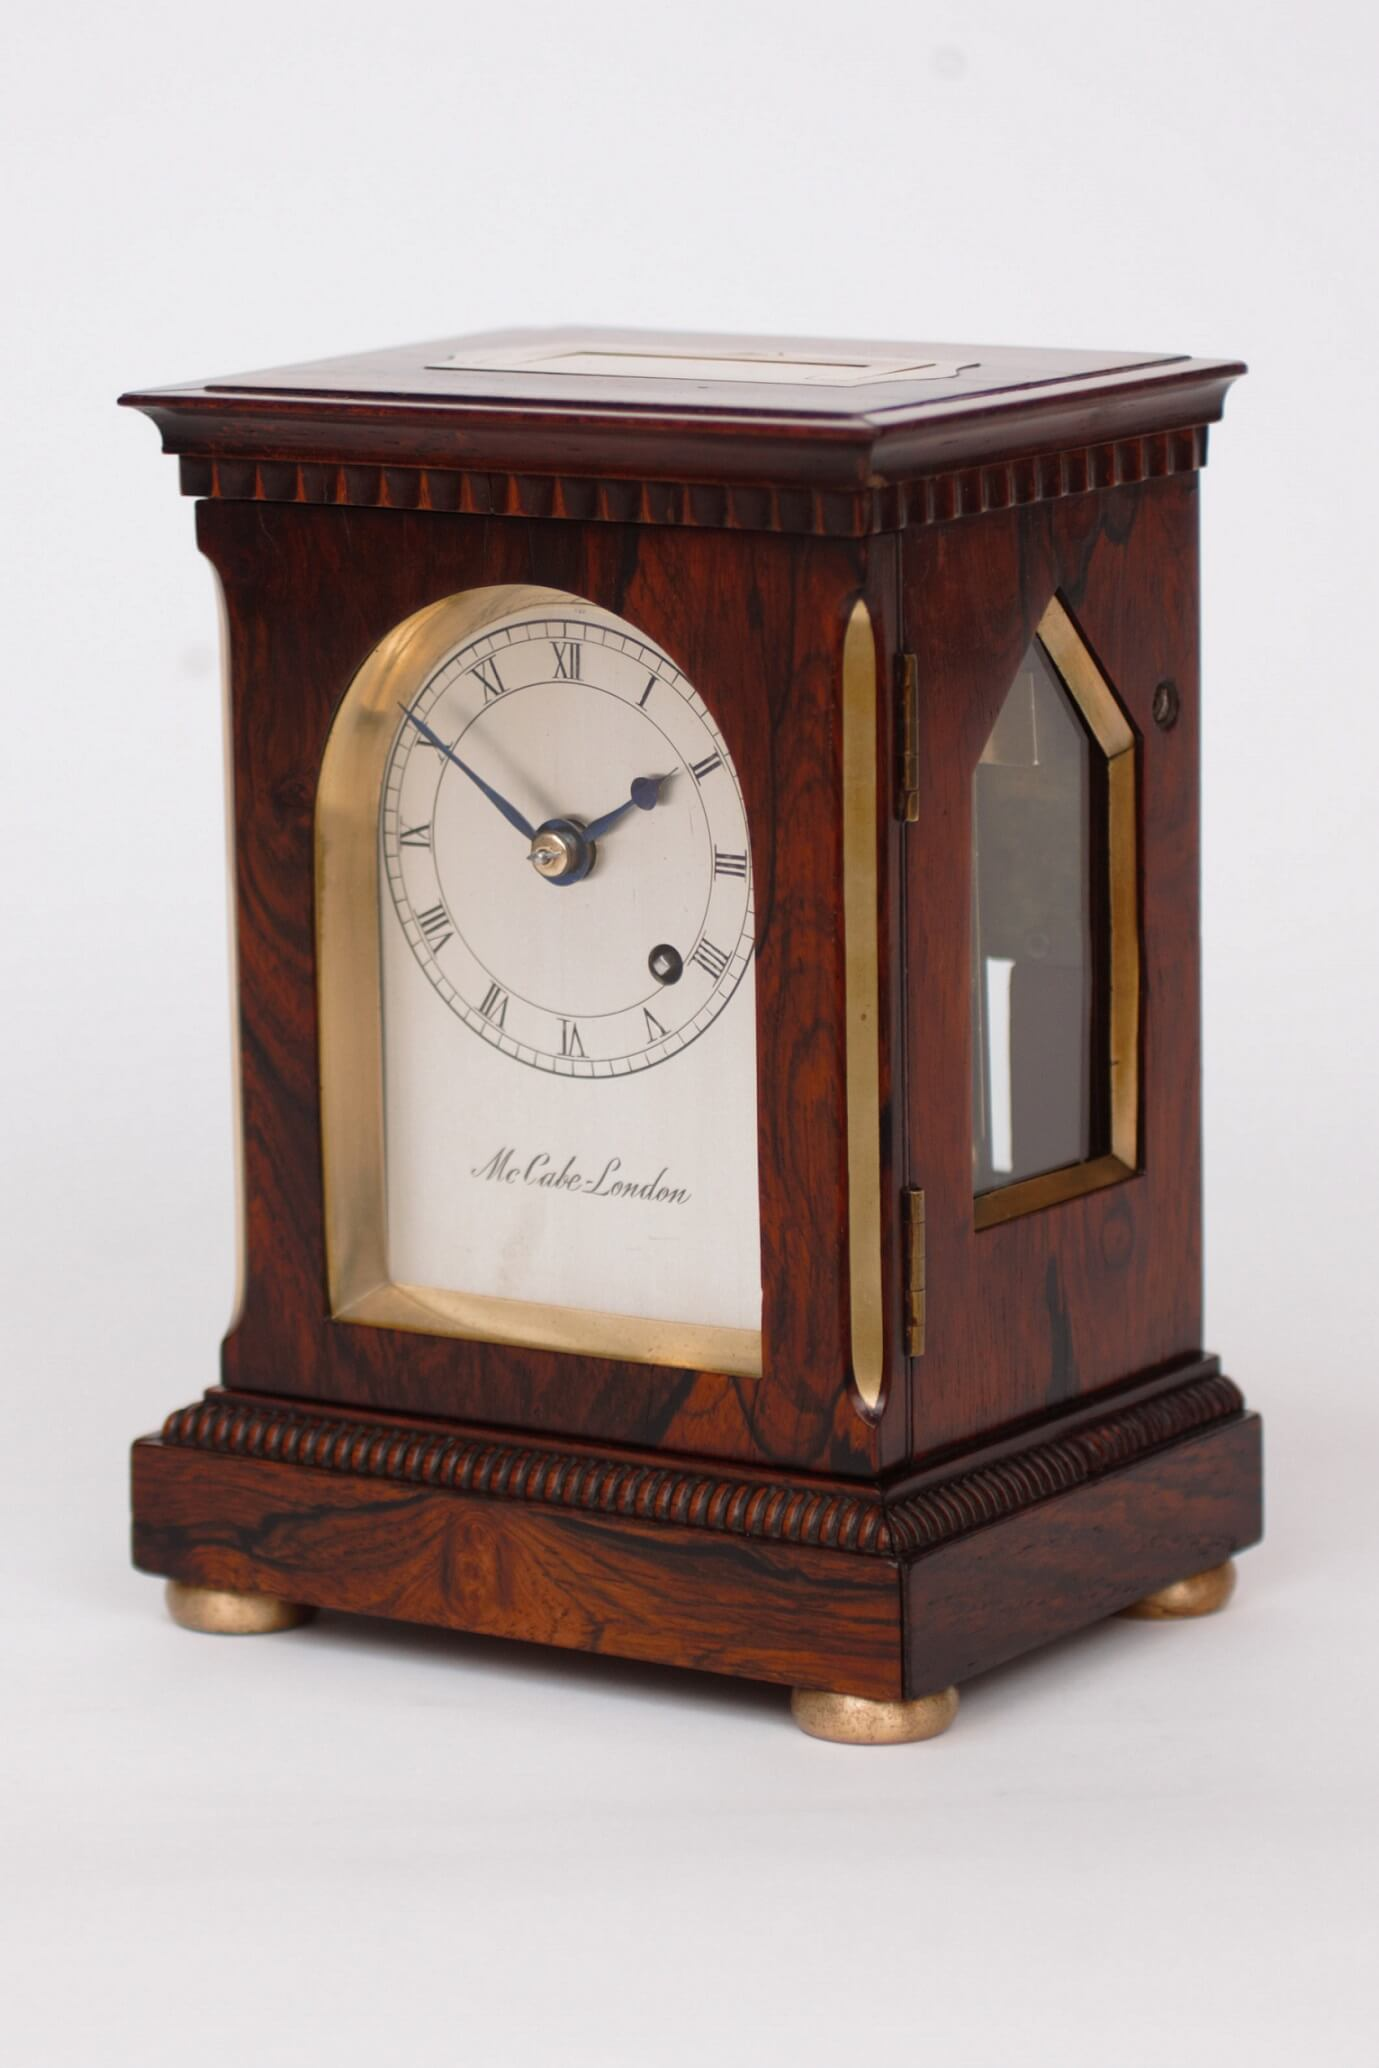 English-British-brass-rosewood-library-travel-antique-clock-timepiece-McCabe-London